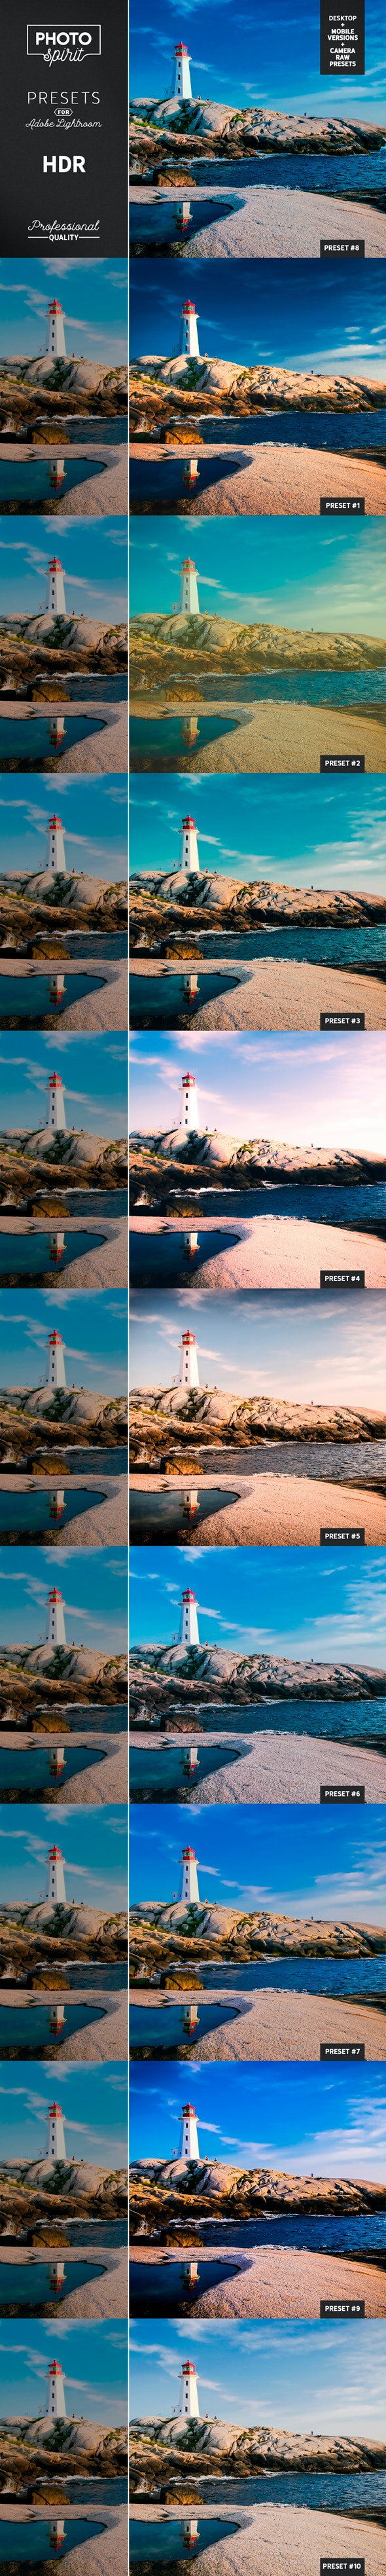 HDR Presets DNG Mobile + Desktop + Camera RAW